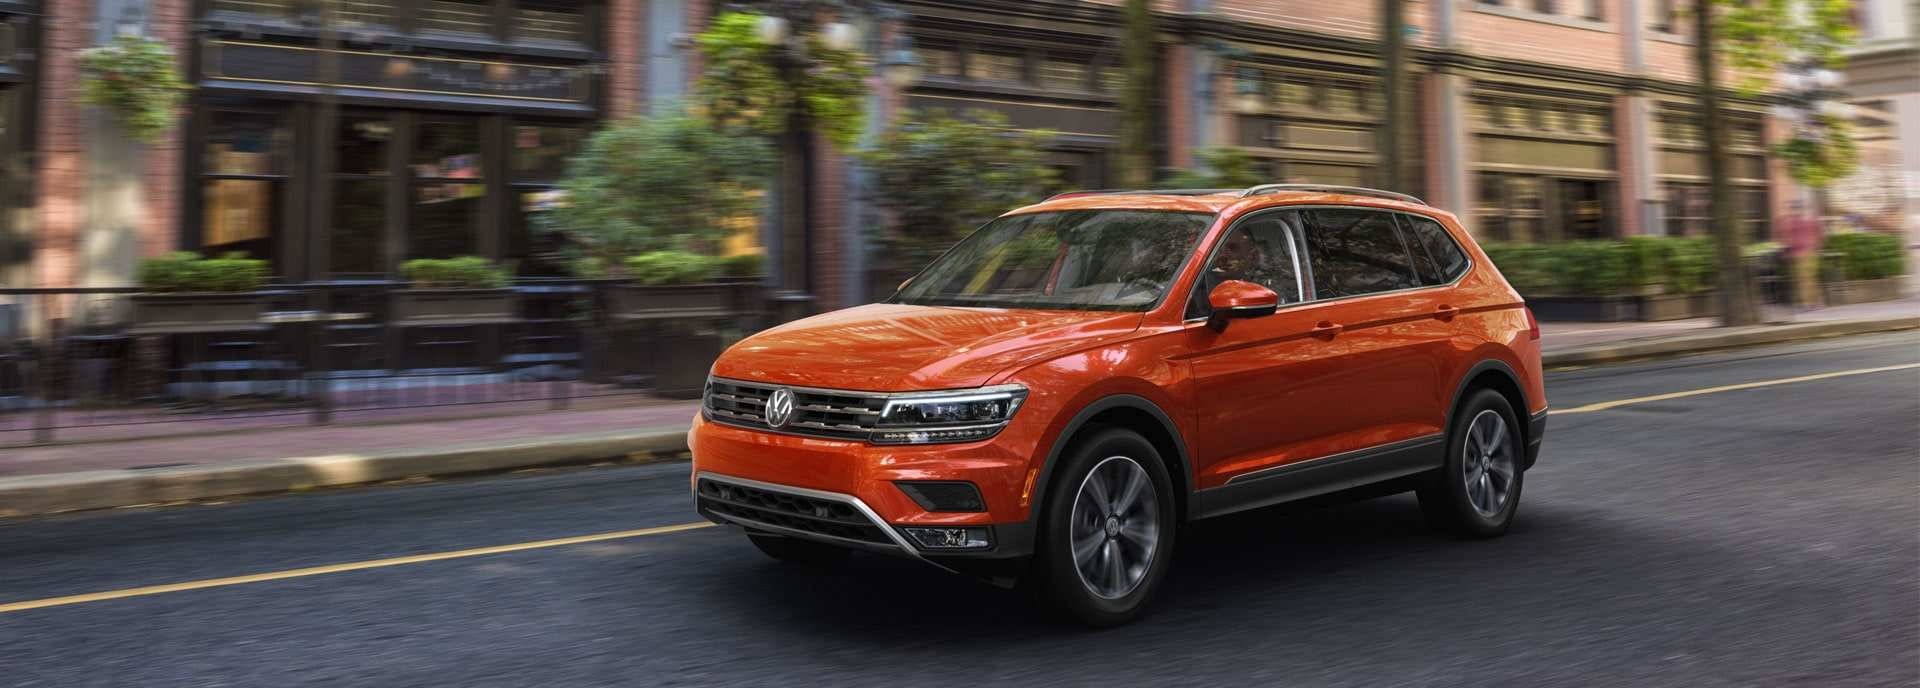 46 The Best 2019 Volkswagen Tiguan Pictures